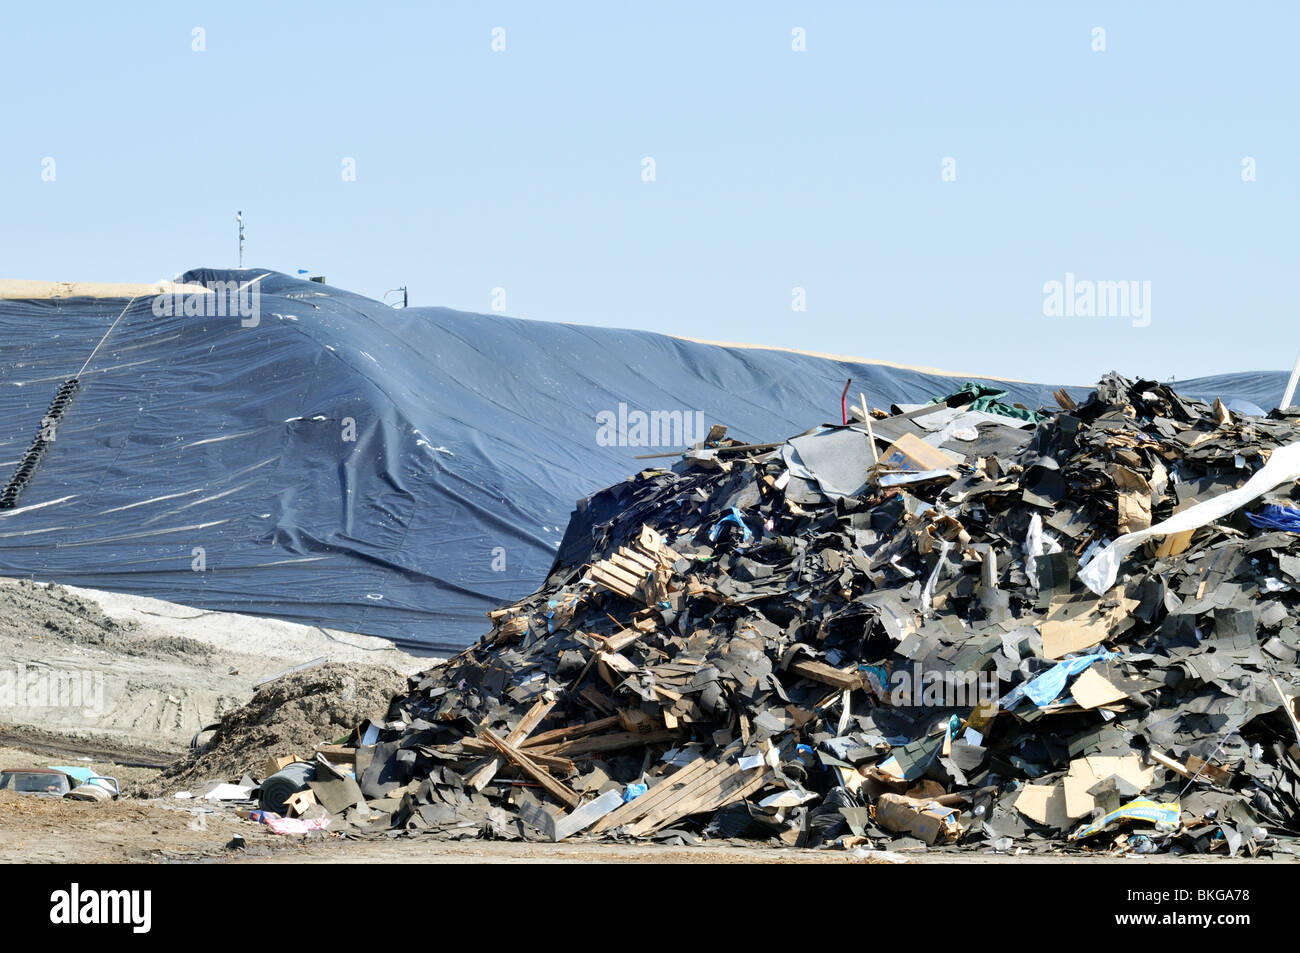 Pile Of Building Debris : Landfill dump with pile of trash and commercial